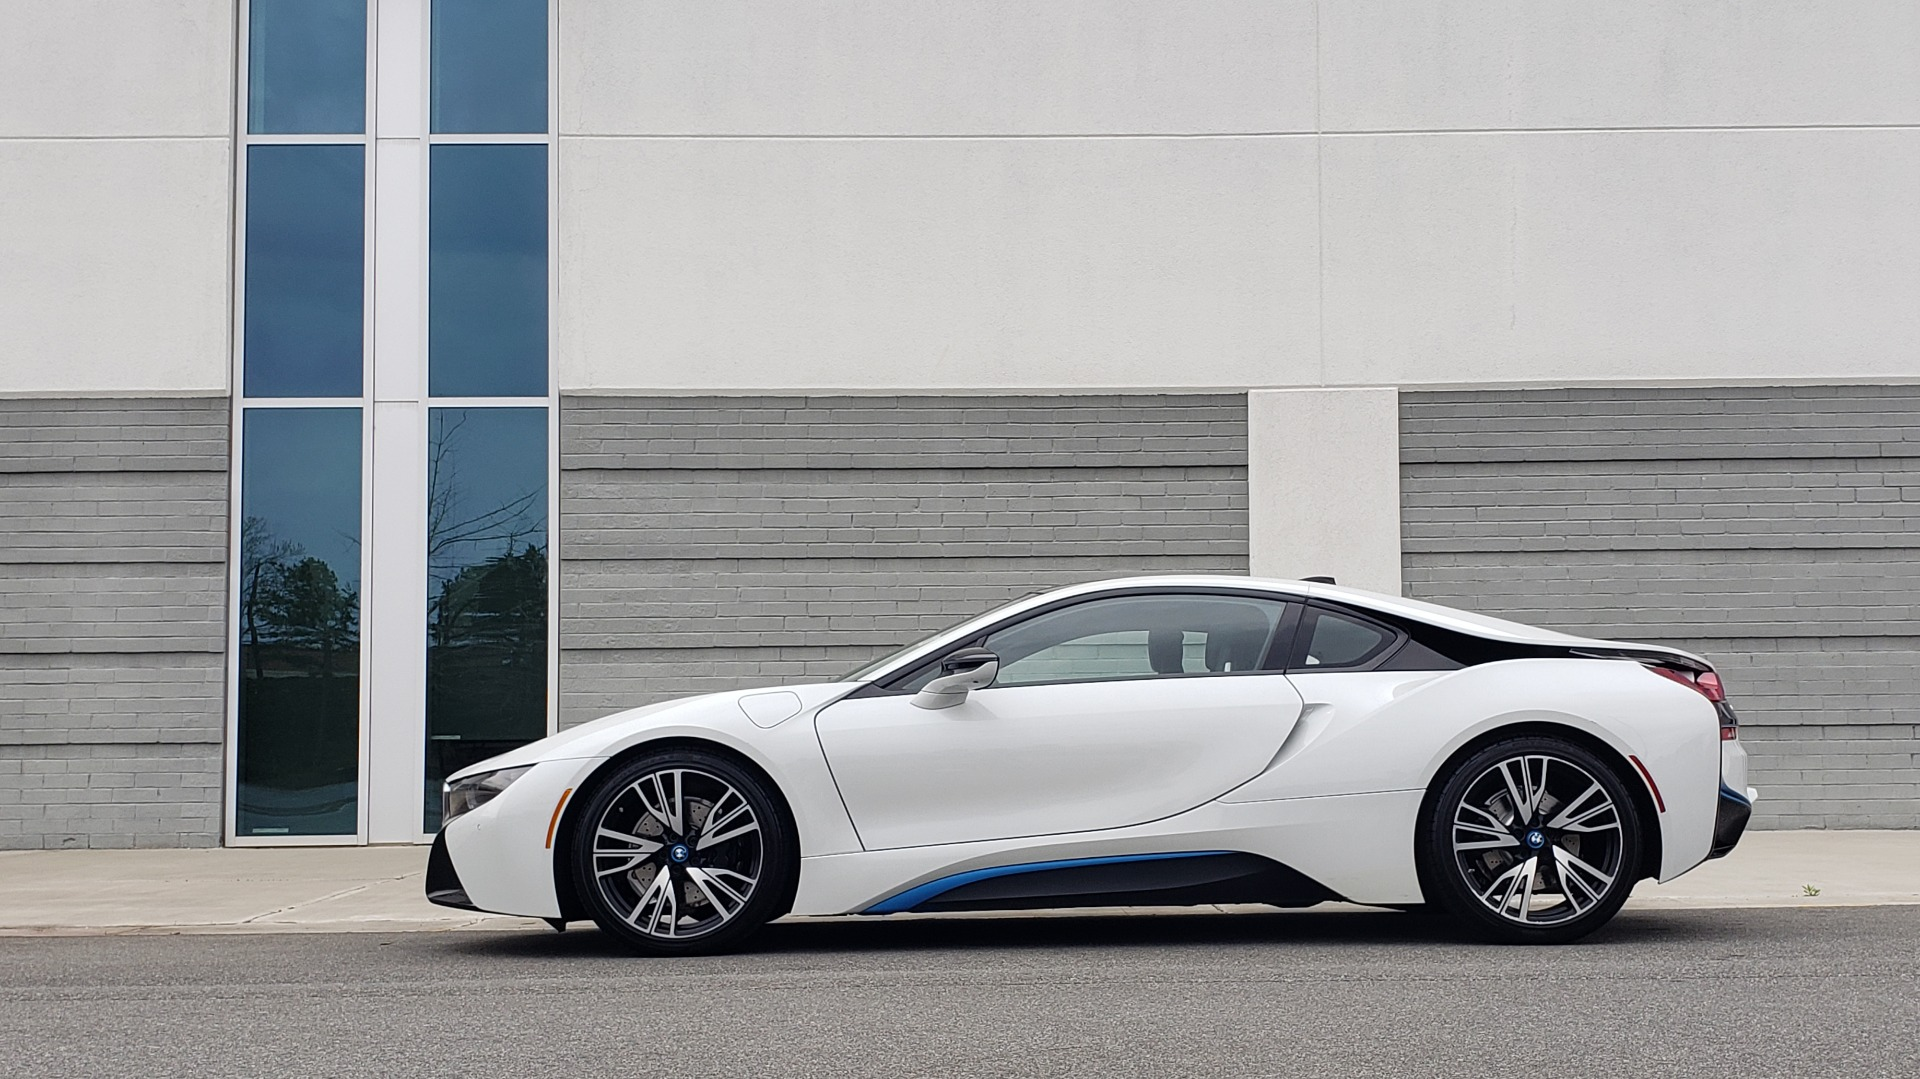 Used 2016 BMW i8 COUPE / GIGA WORLD / NAV / HUD / 20IN WHEELS / REARVIEW for sale Sold at Formula Imports in Charlotte NC 28227 6